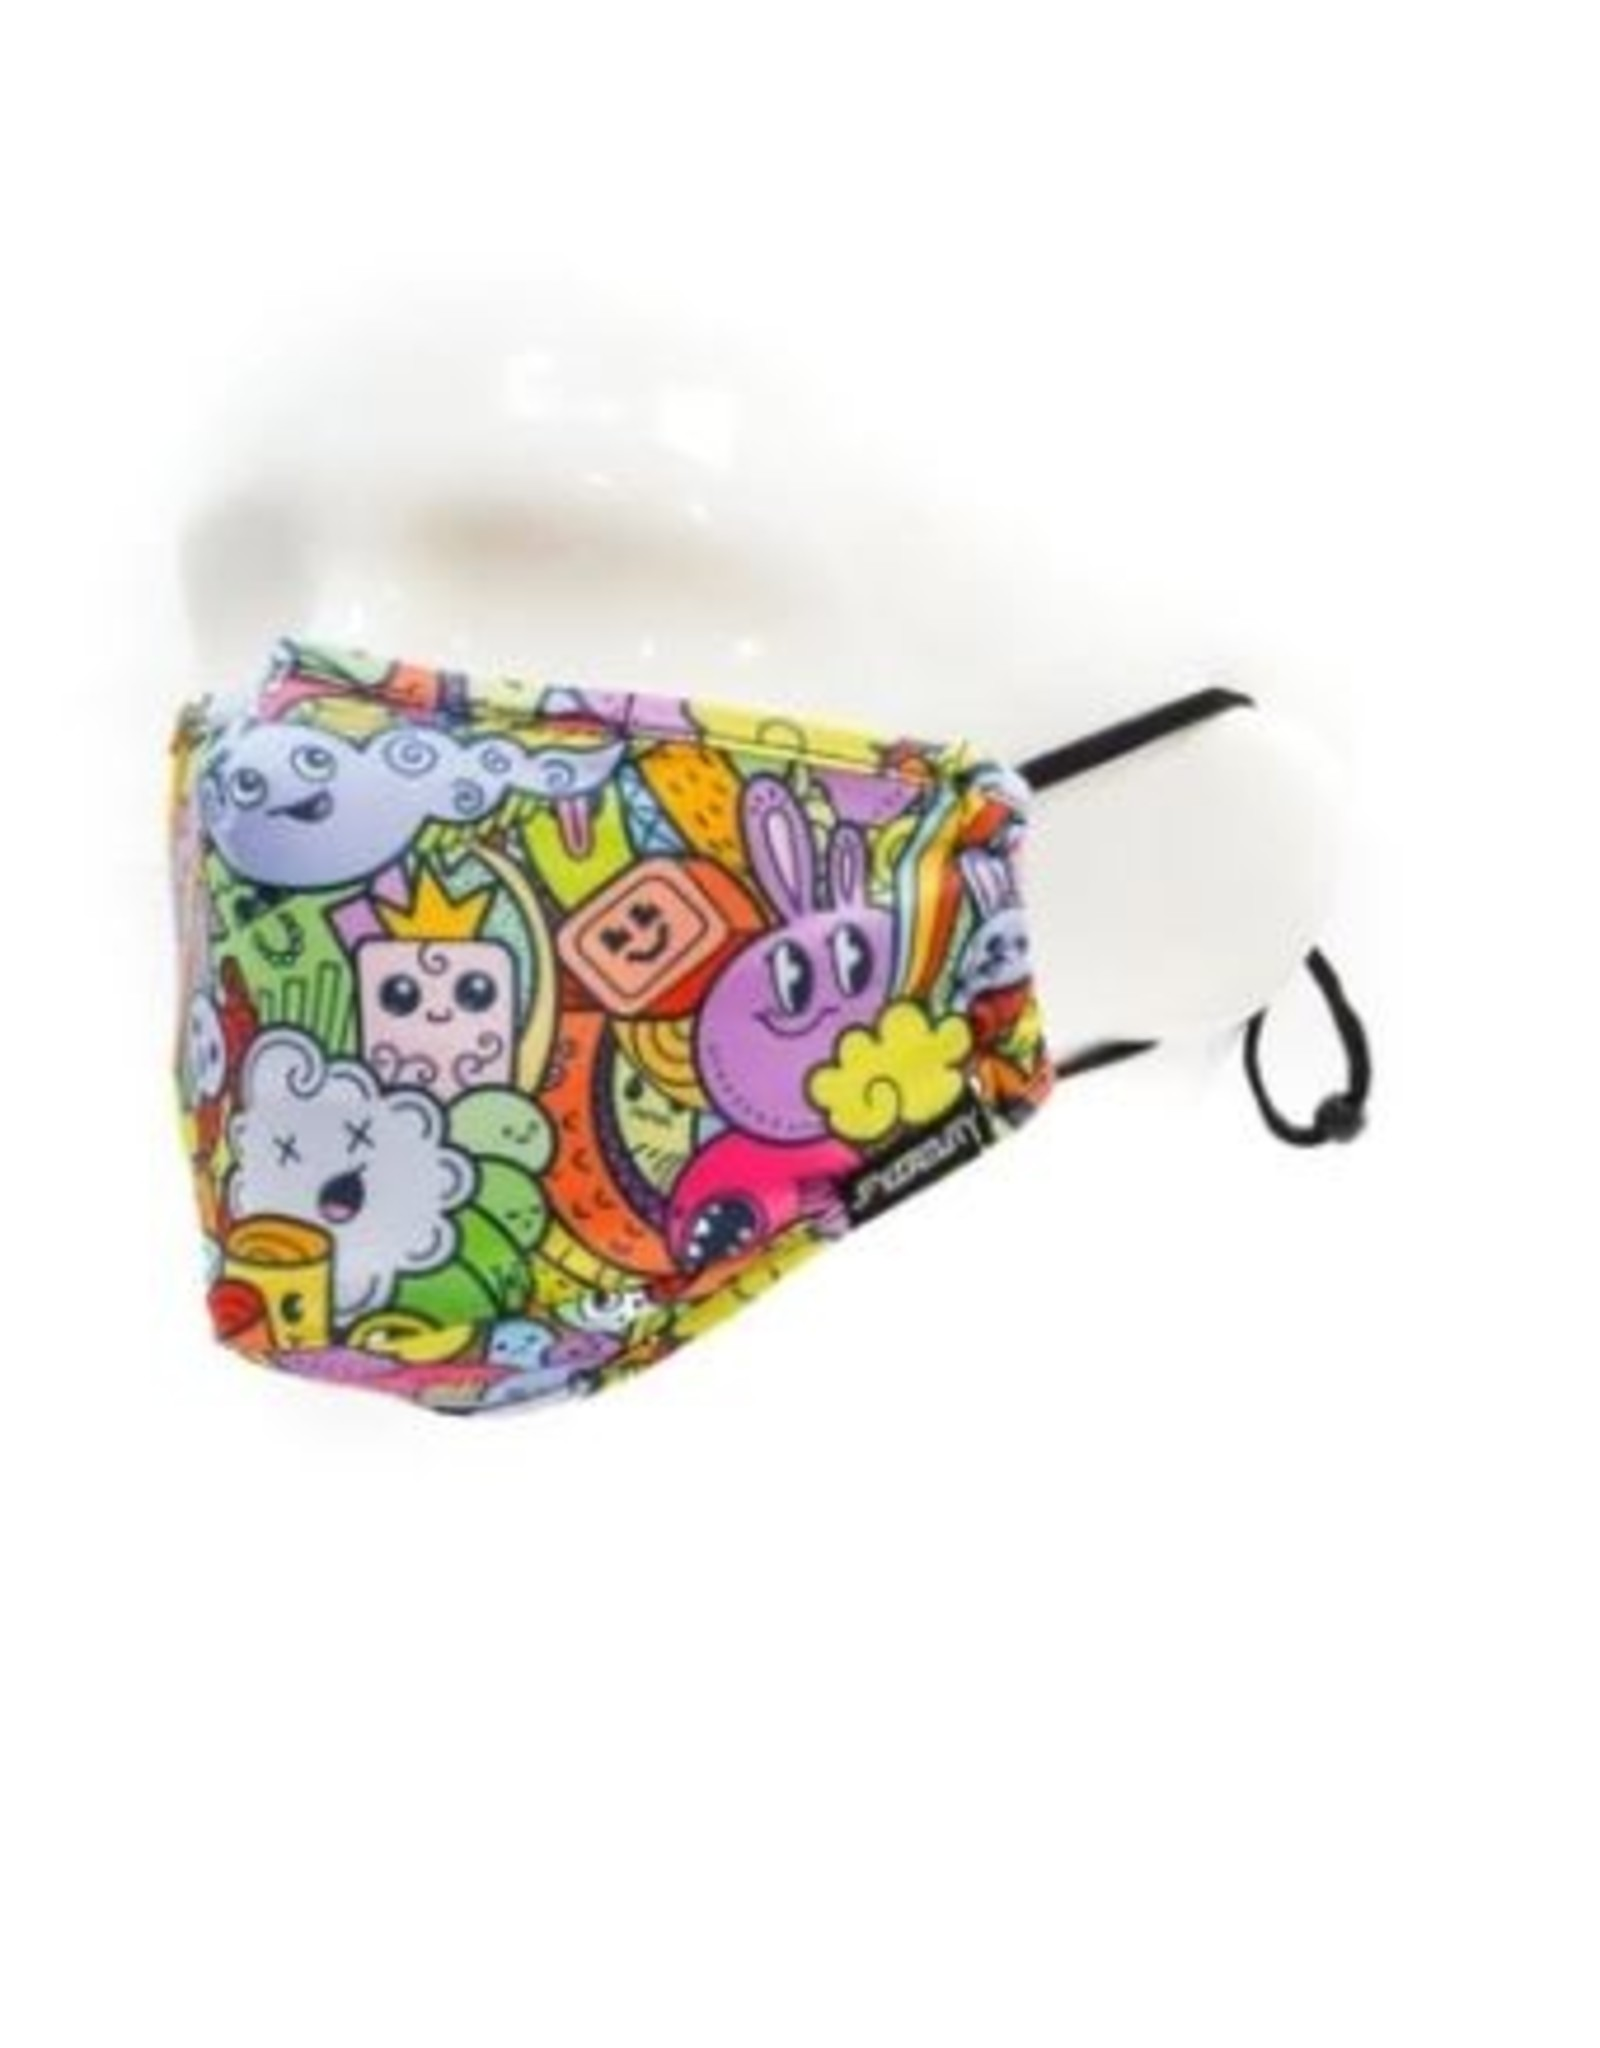 Scratchtracks Kids Face Covering Mask: Cup of Bows Monsters